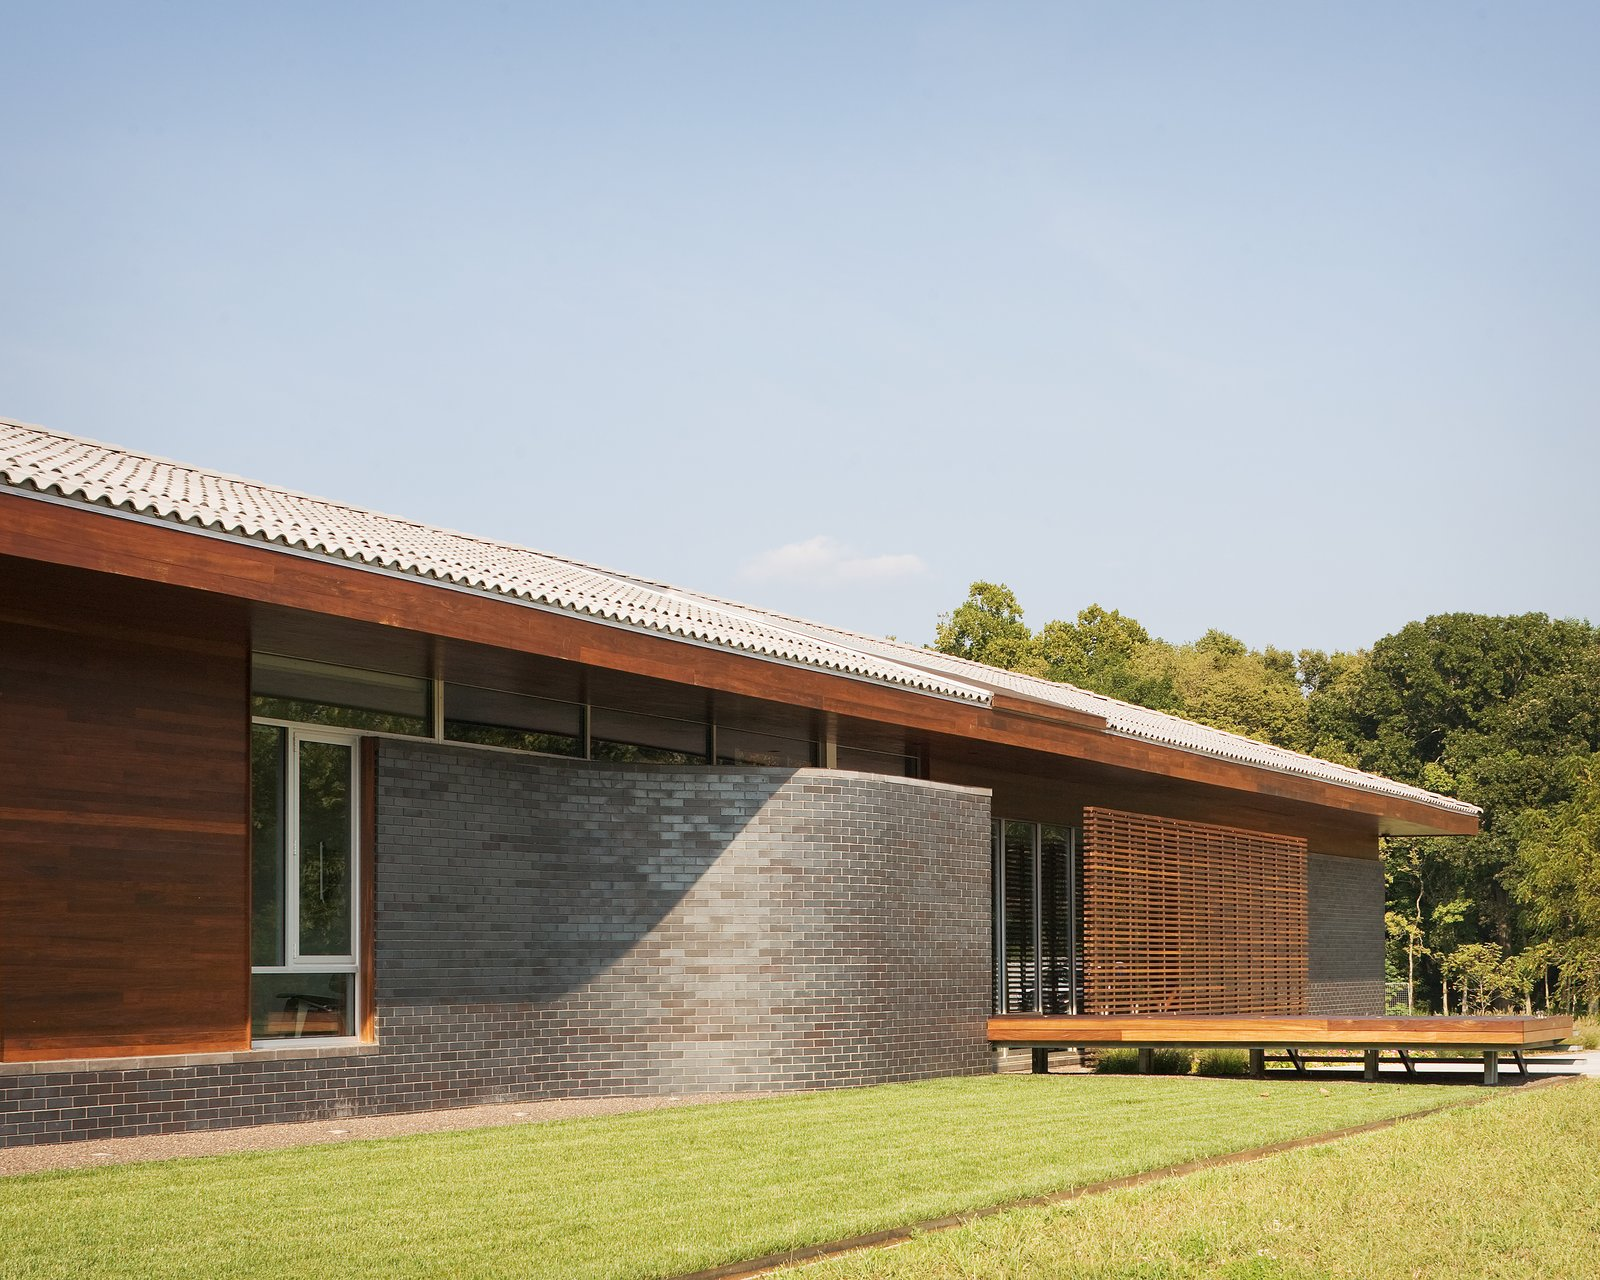 The firm chose Endicott brick for the curved elements of the exterior, a natural material with a glossy effect that creates the illusion of changing colors and animated movement. The dark grey contrasts boldly with the earthy brown tones of the durable ipe wood used for the exterior walls.  Brick Houses from Around the World  by Matthew Keeshin from A Bold Home Creatively Combines Curves and Modern Lines